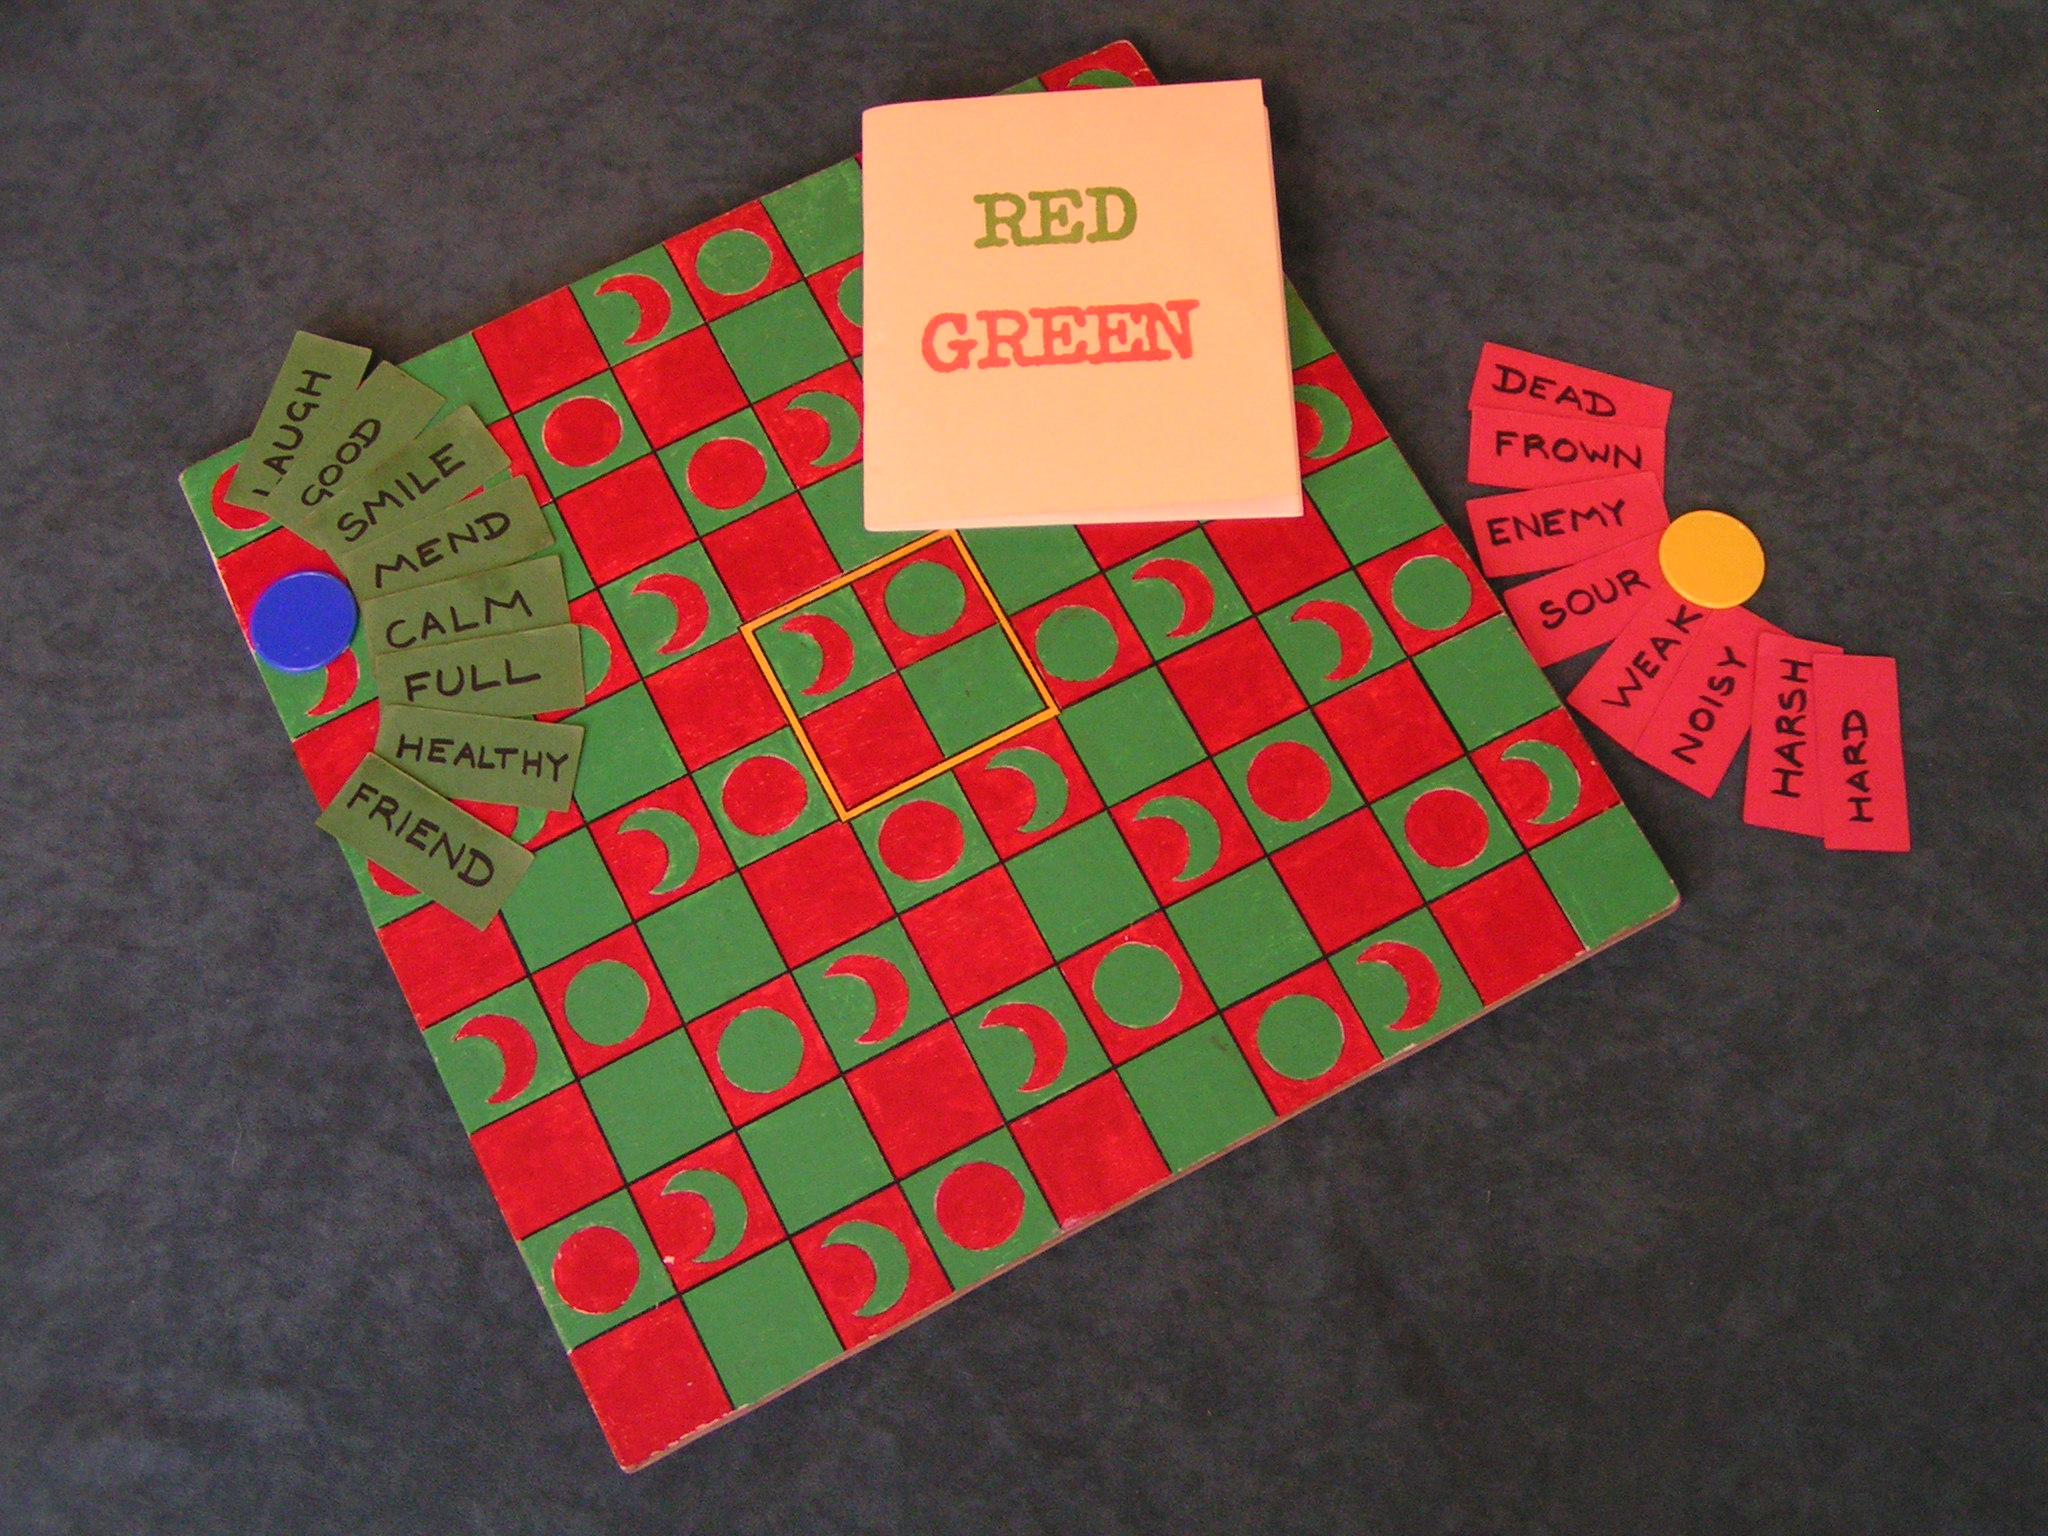 redgreen-windows project